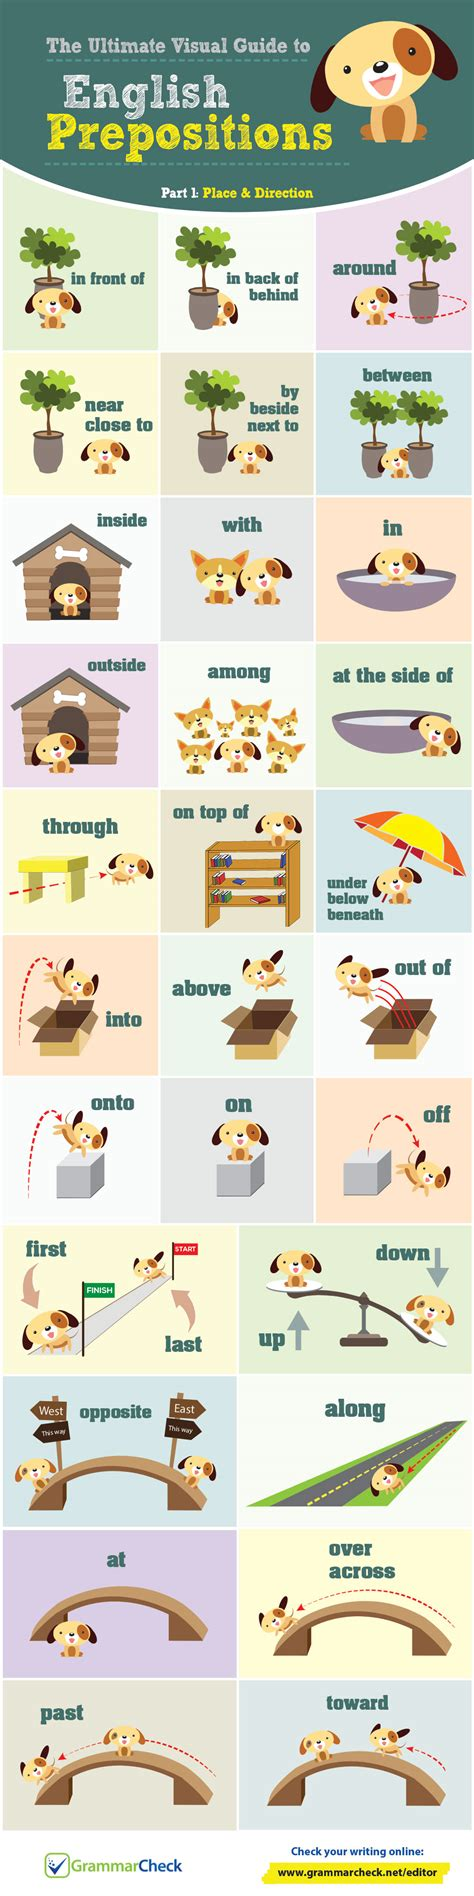 the guide to the visual guide to prepositions part 1 2